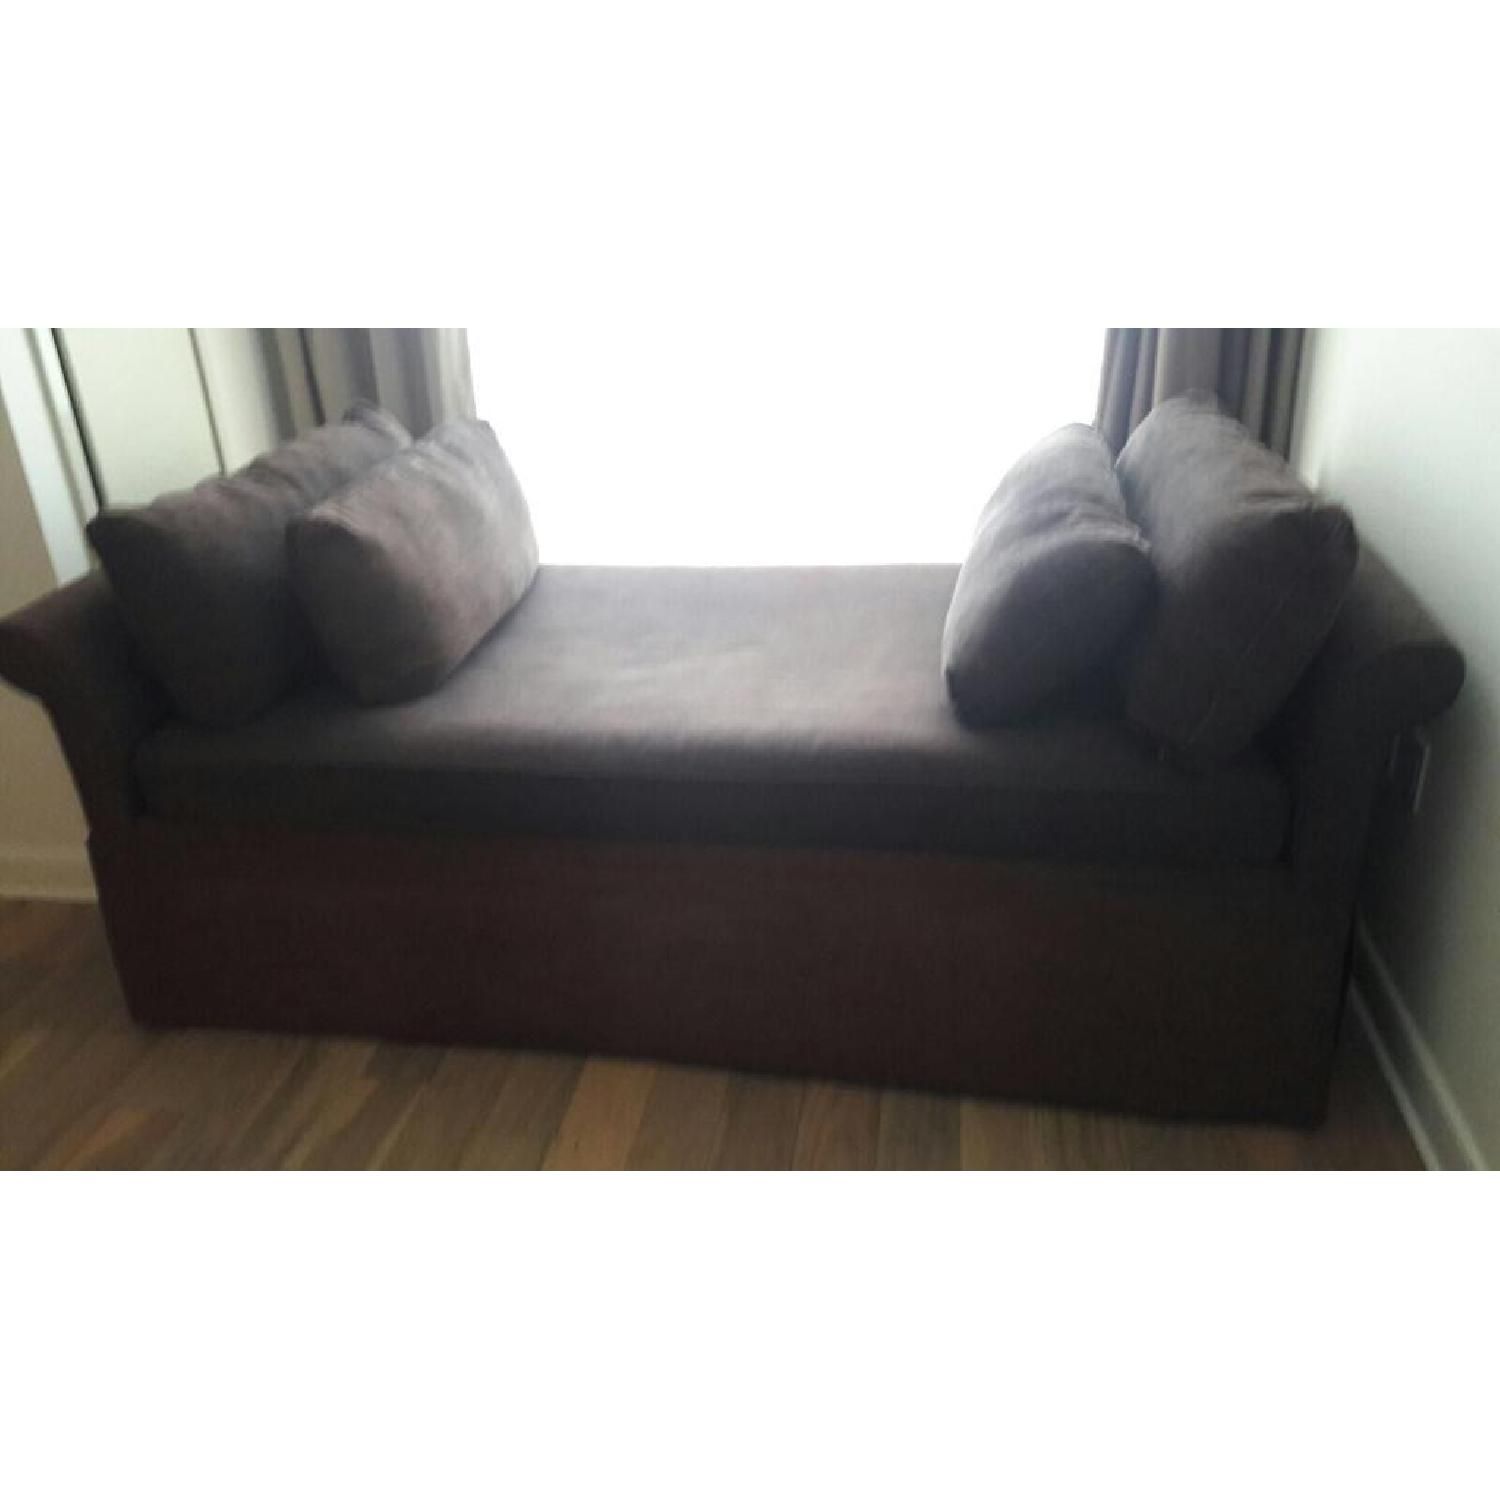 Room & Board Upholstered Daybed w/ Trundle - image-1